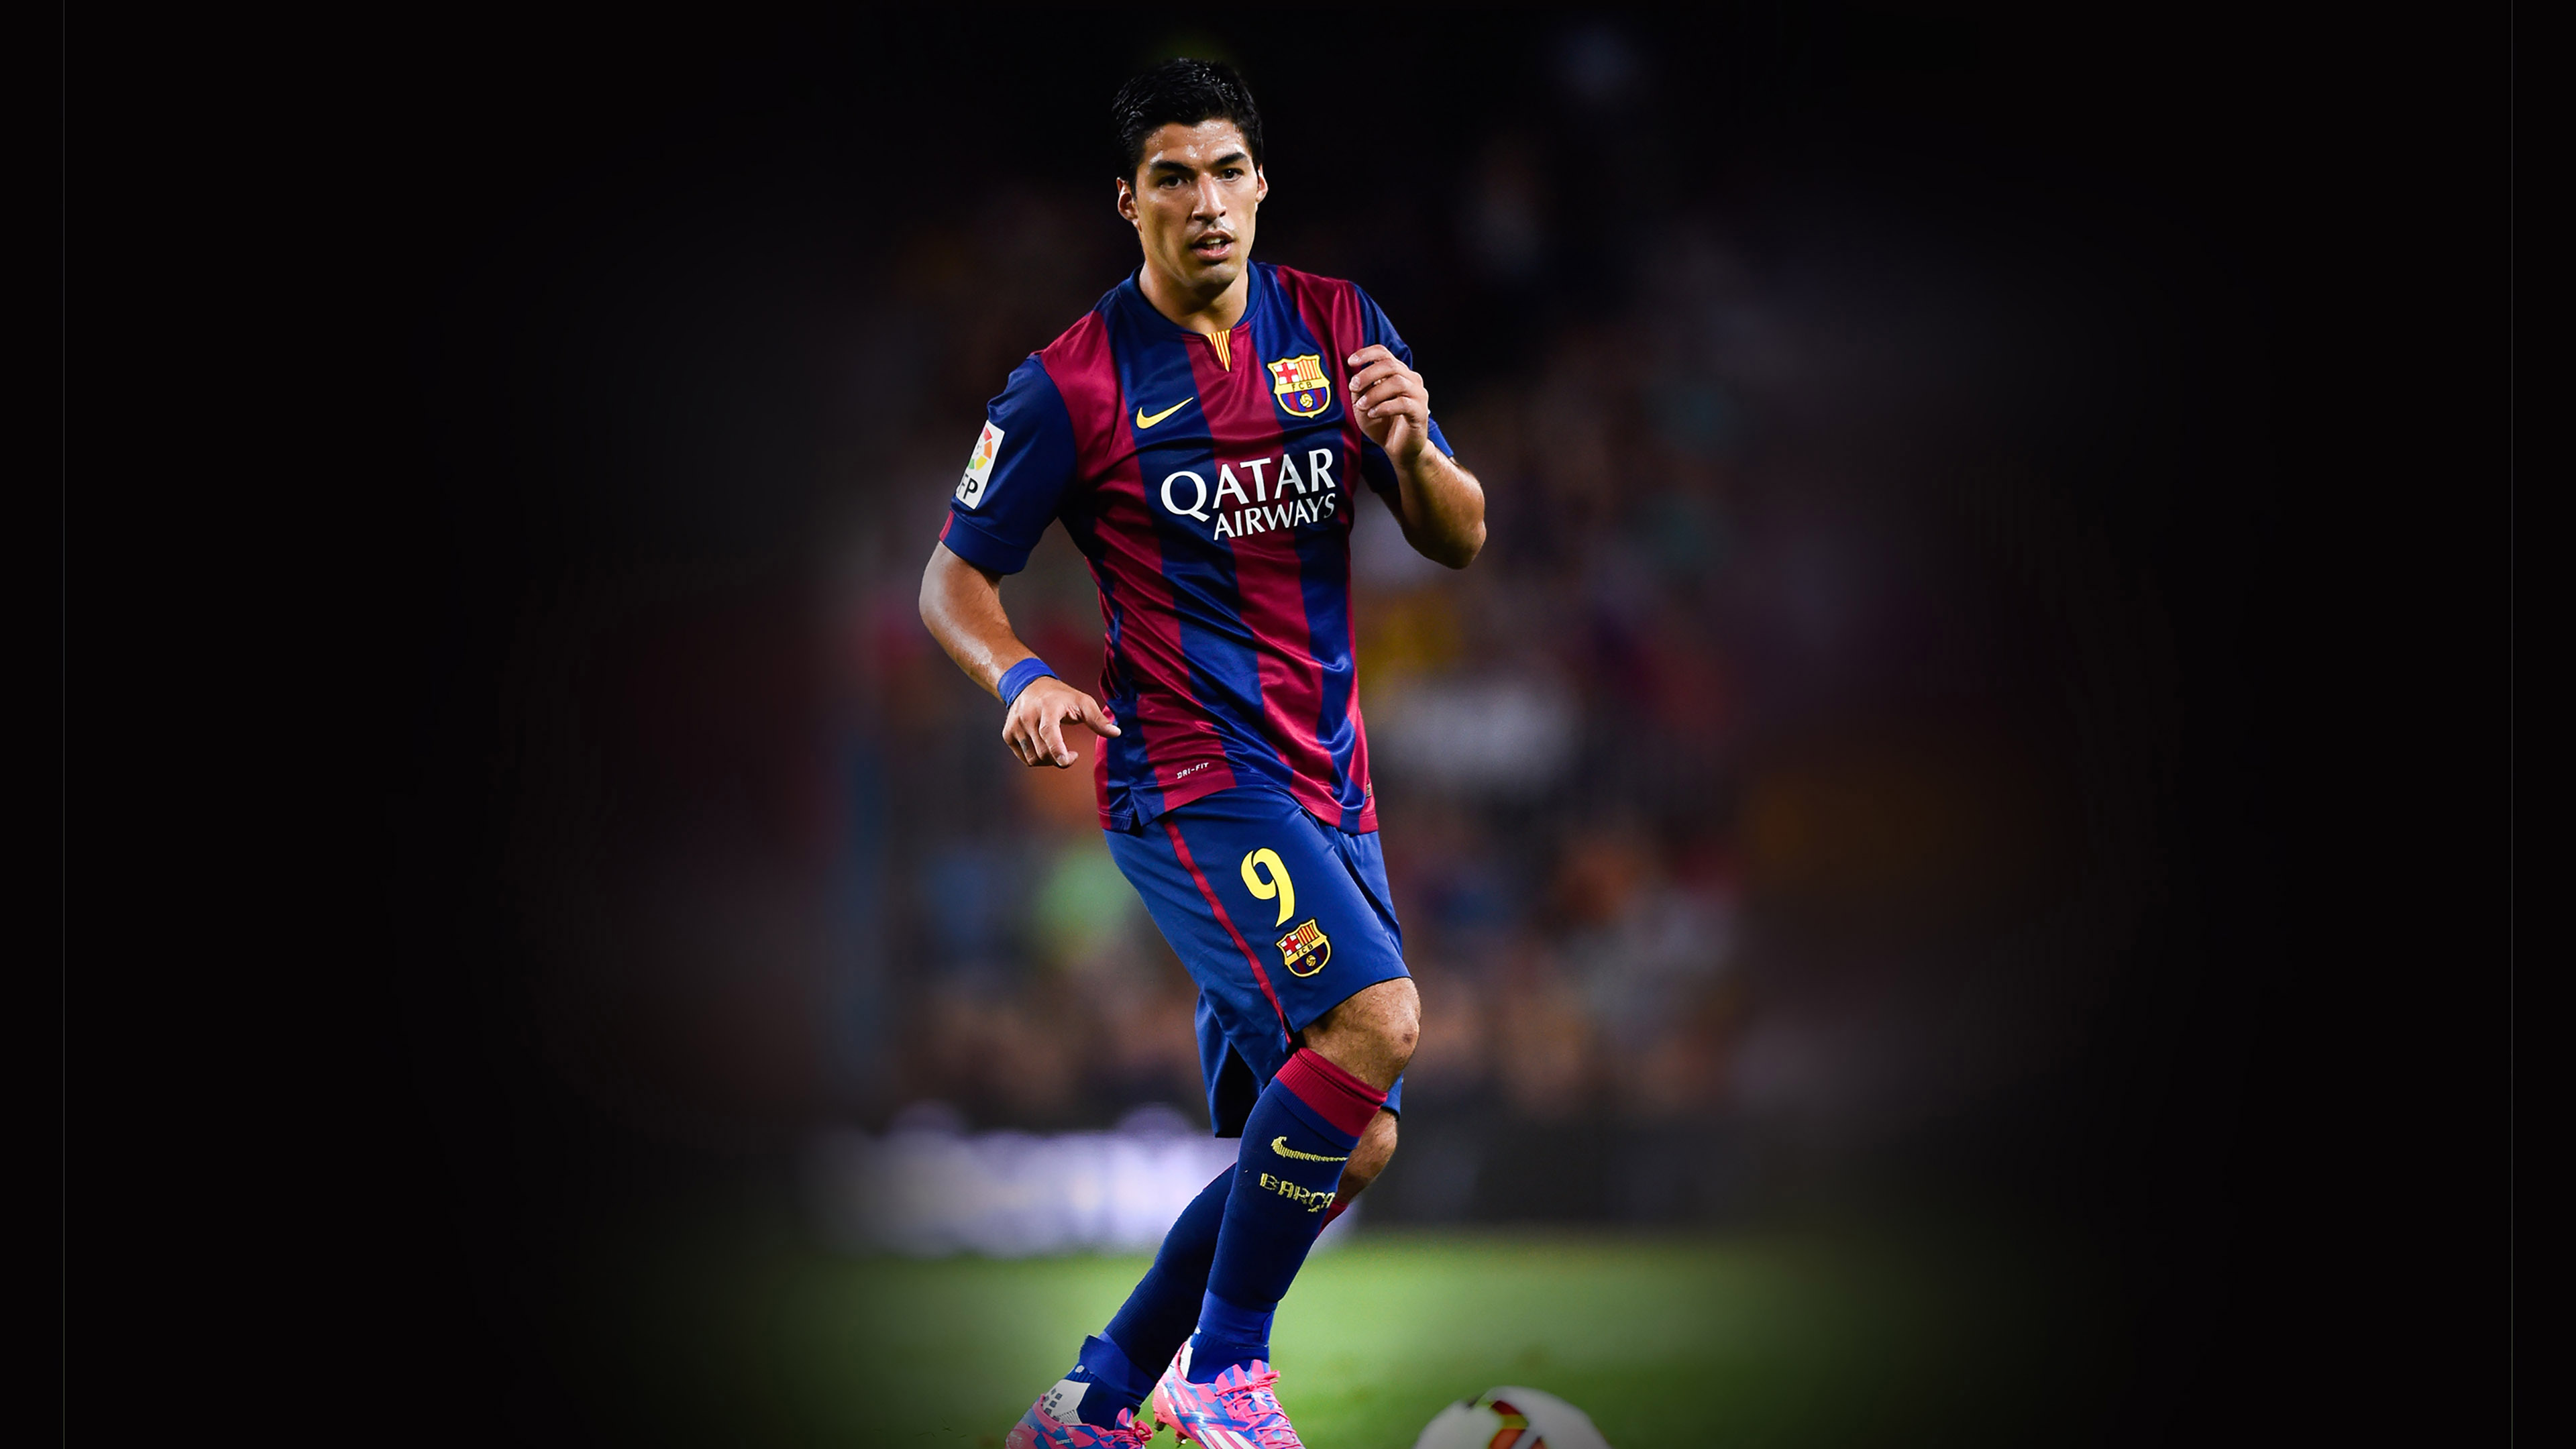 Hc52 Suarez Barcelona Welcome El Clasico Soccer Papers Co